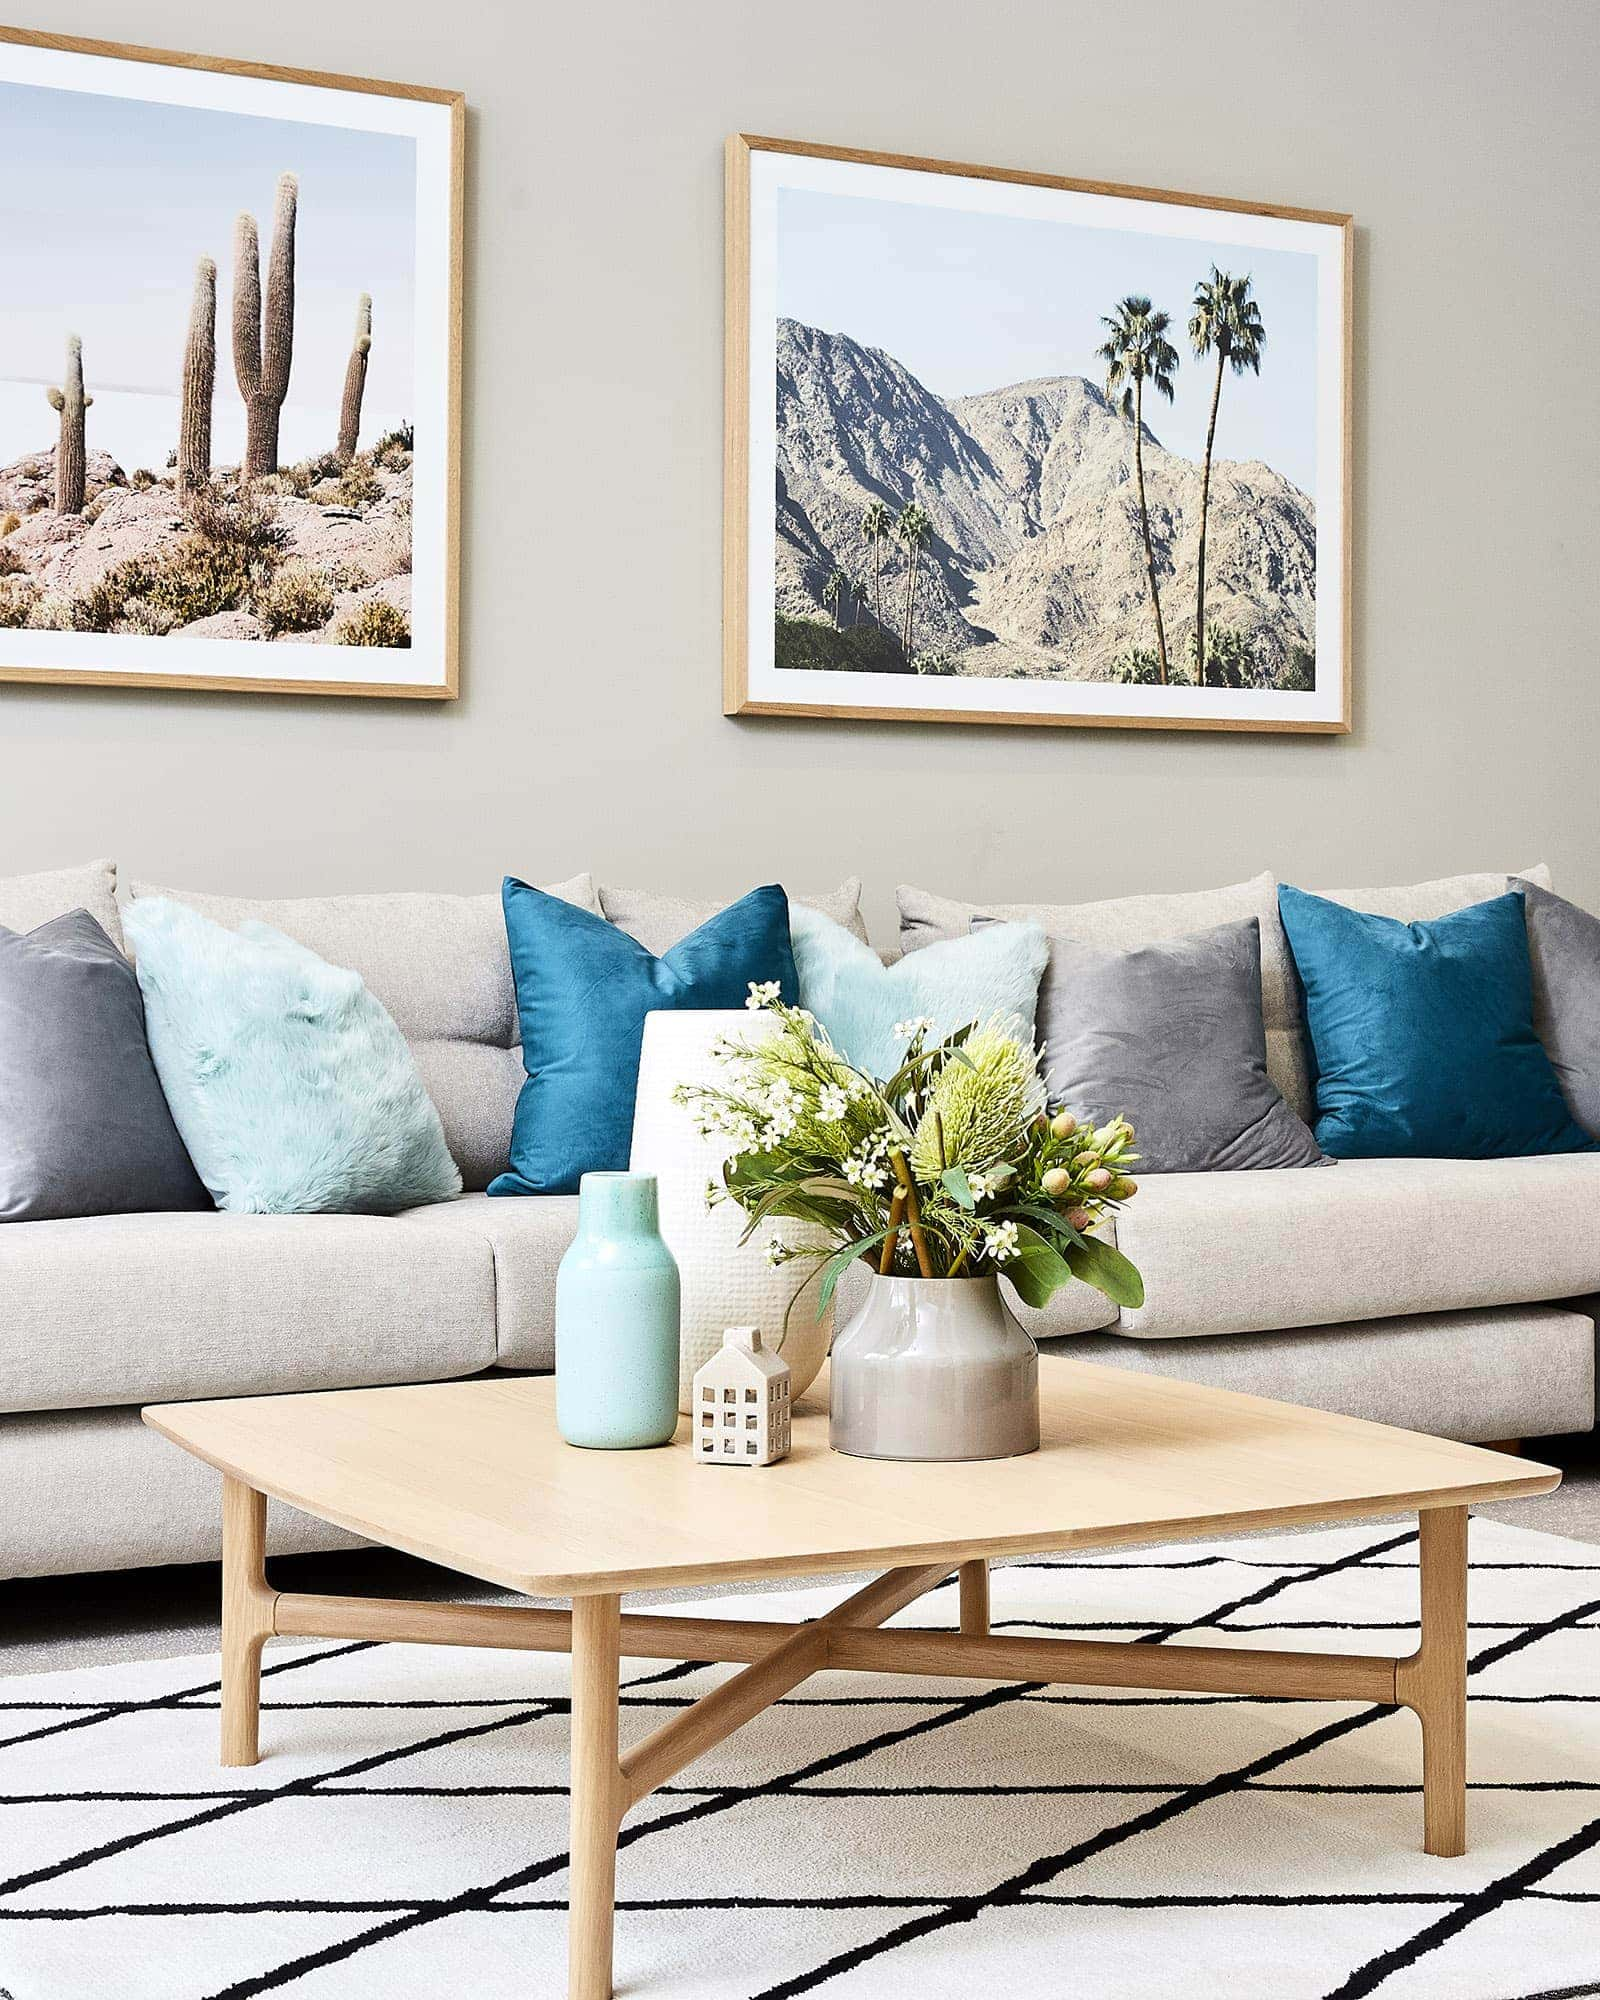 cushions living room family design ideas super affordable spring decorating for inside and out oak coffee table in with desert artwork teal from lorraine lea